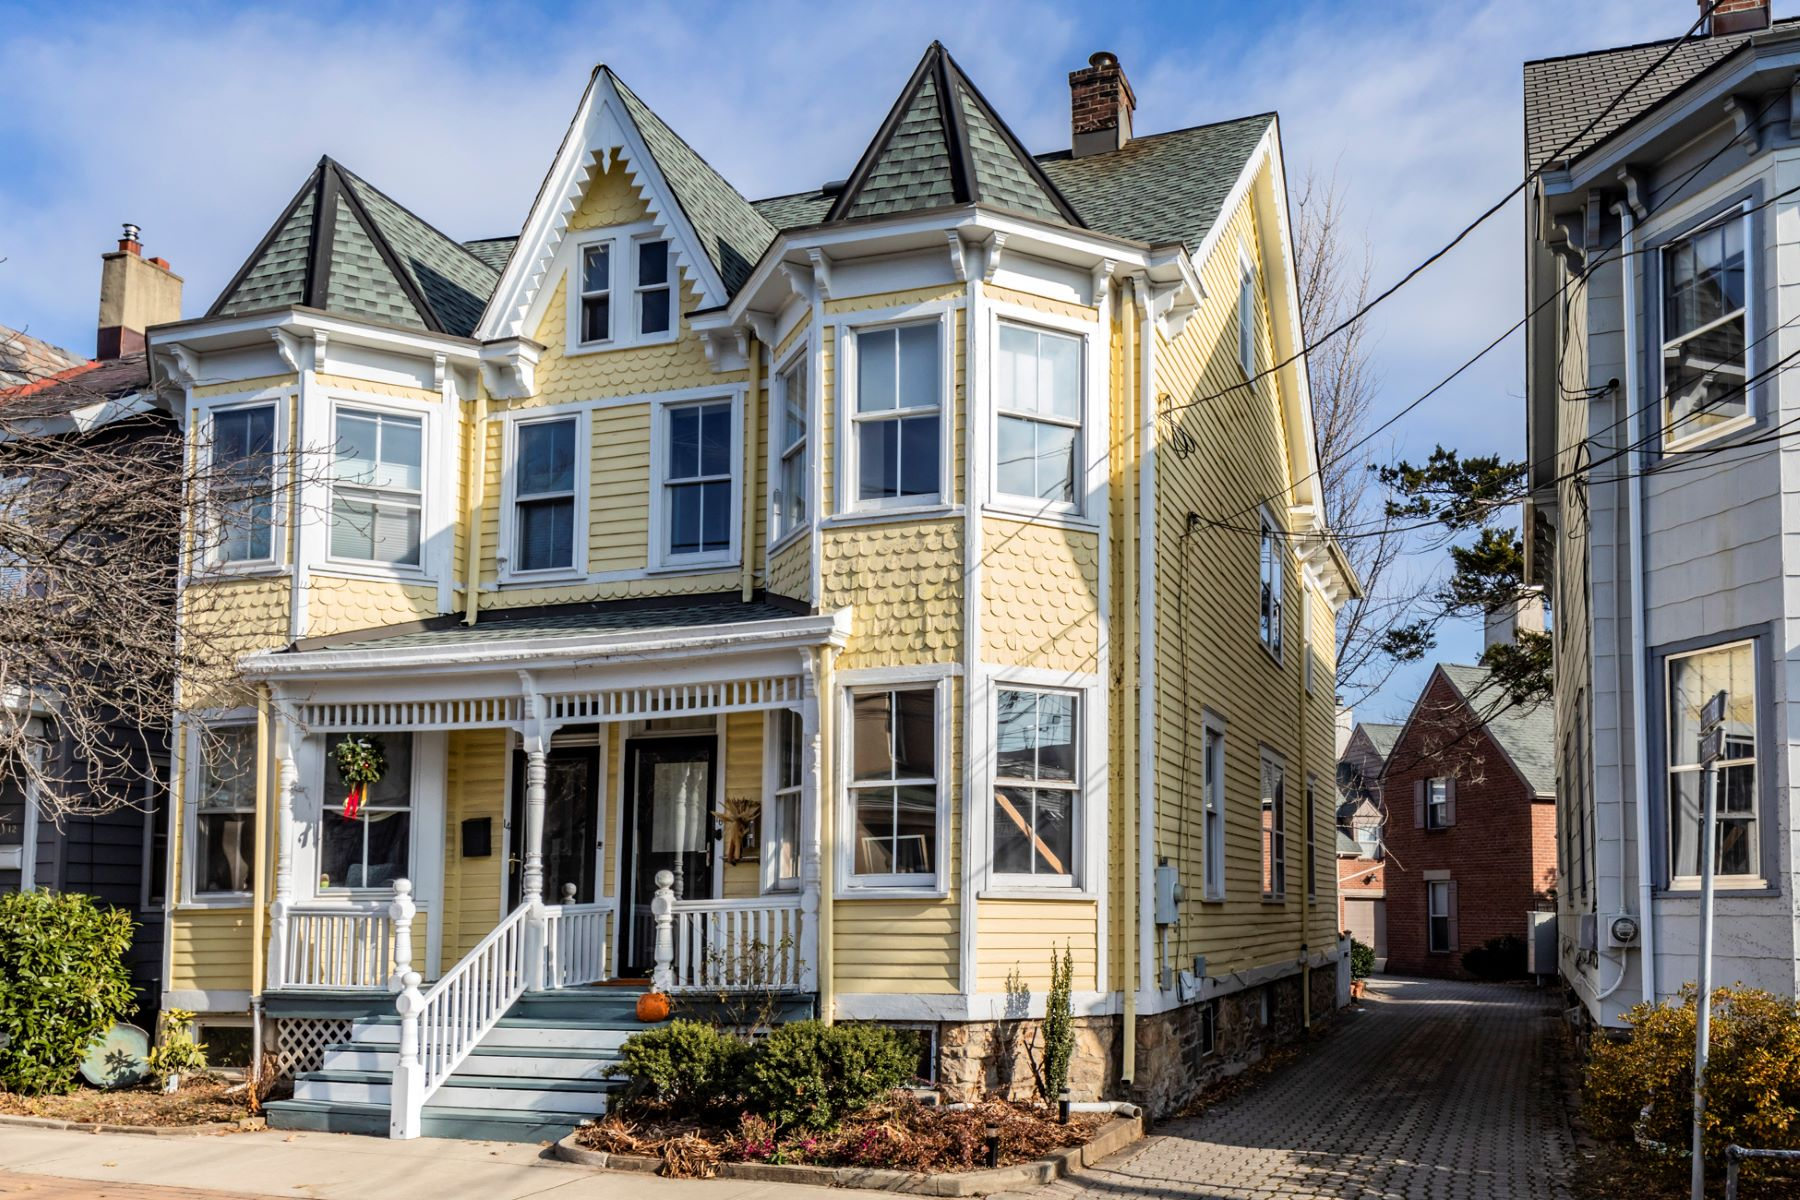 Single Family Home for Sale at Princeton Victorian Gem 16 Charlton Street, Princeton, New Jersey 08540 United States